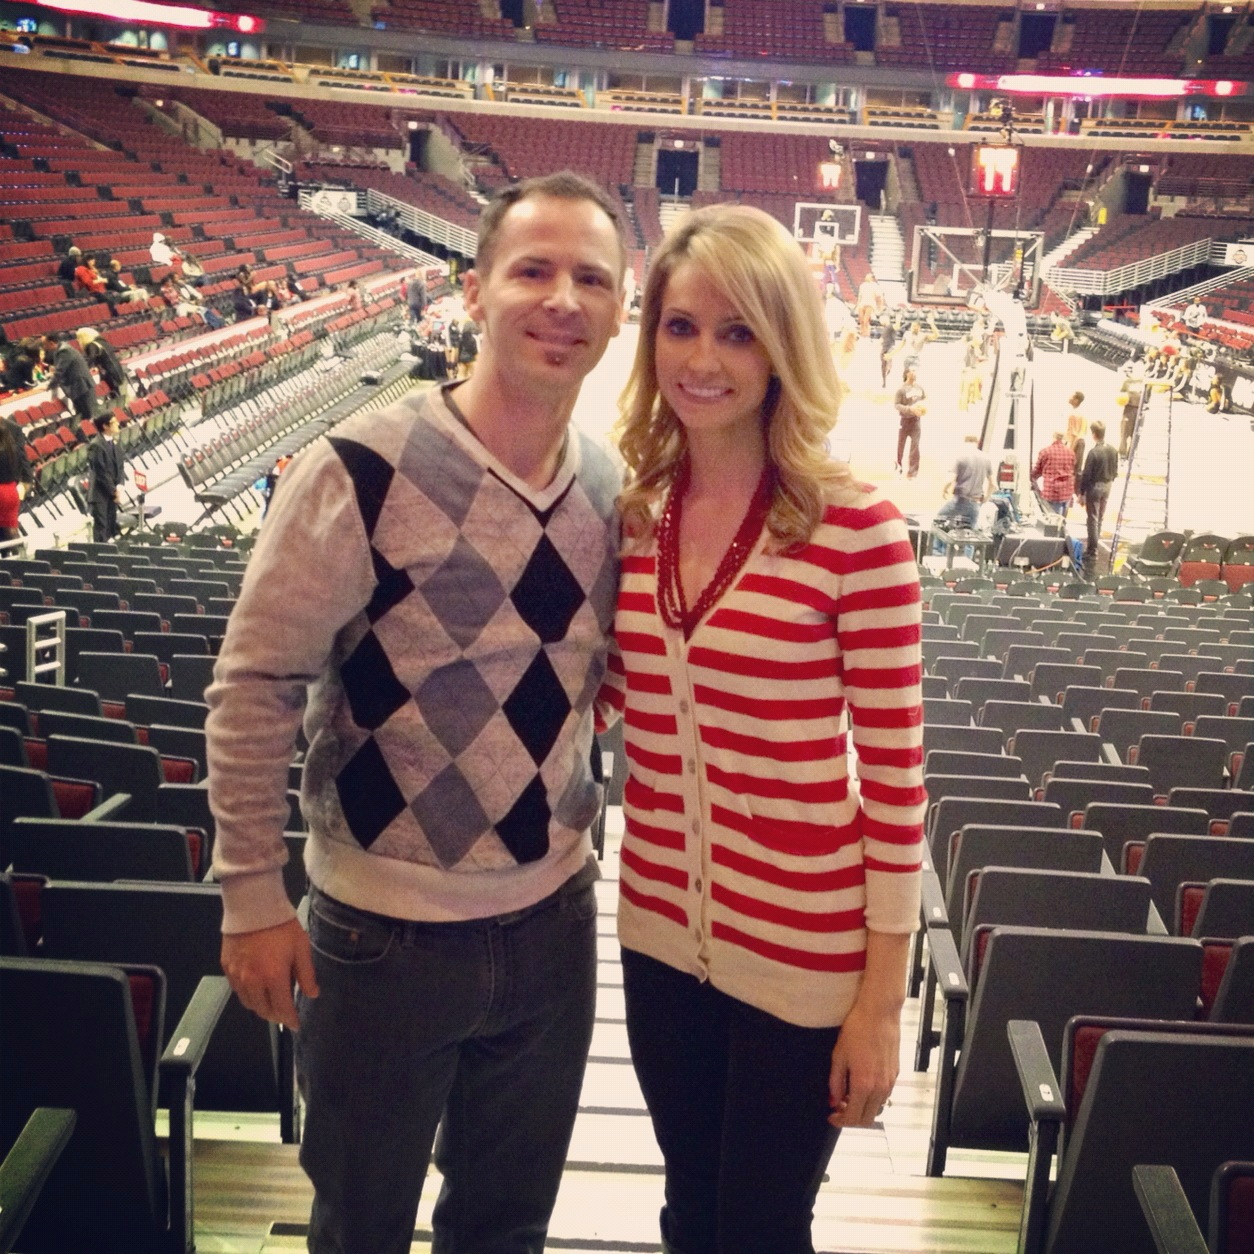 chicago bulls game christm